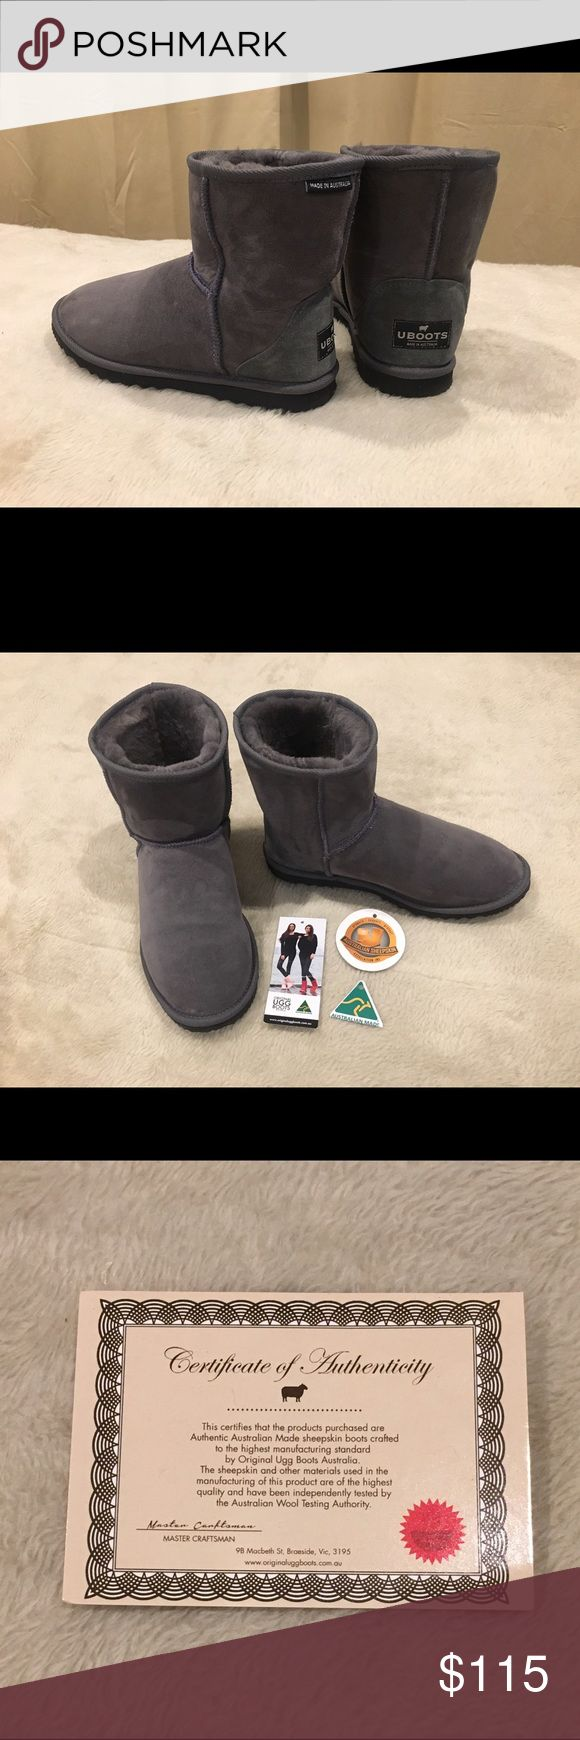 Original Ugg Boots Ultra Short Grey Australian made. Original Ugg Boots. 100% sheepskin. New, worn only once. UGG Shoes Ankle Boots & Booties